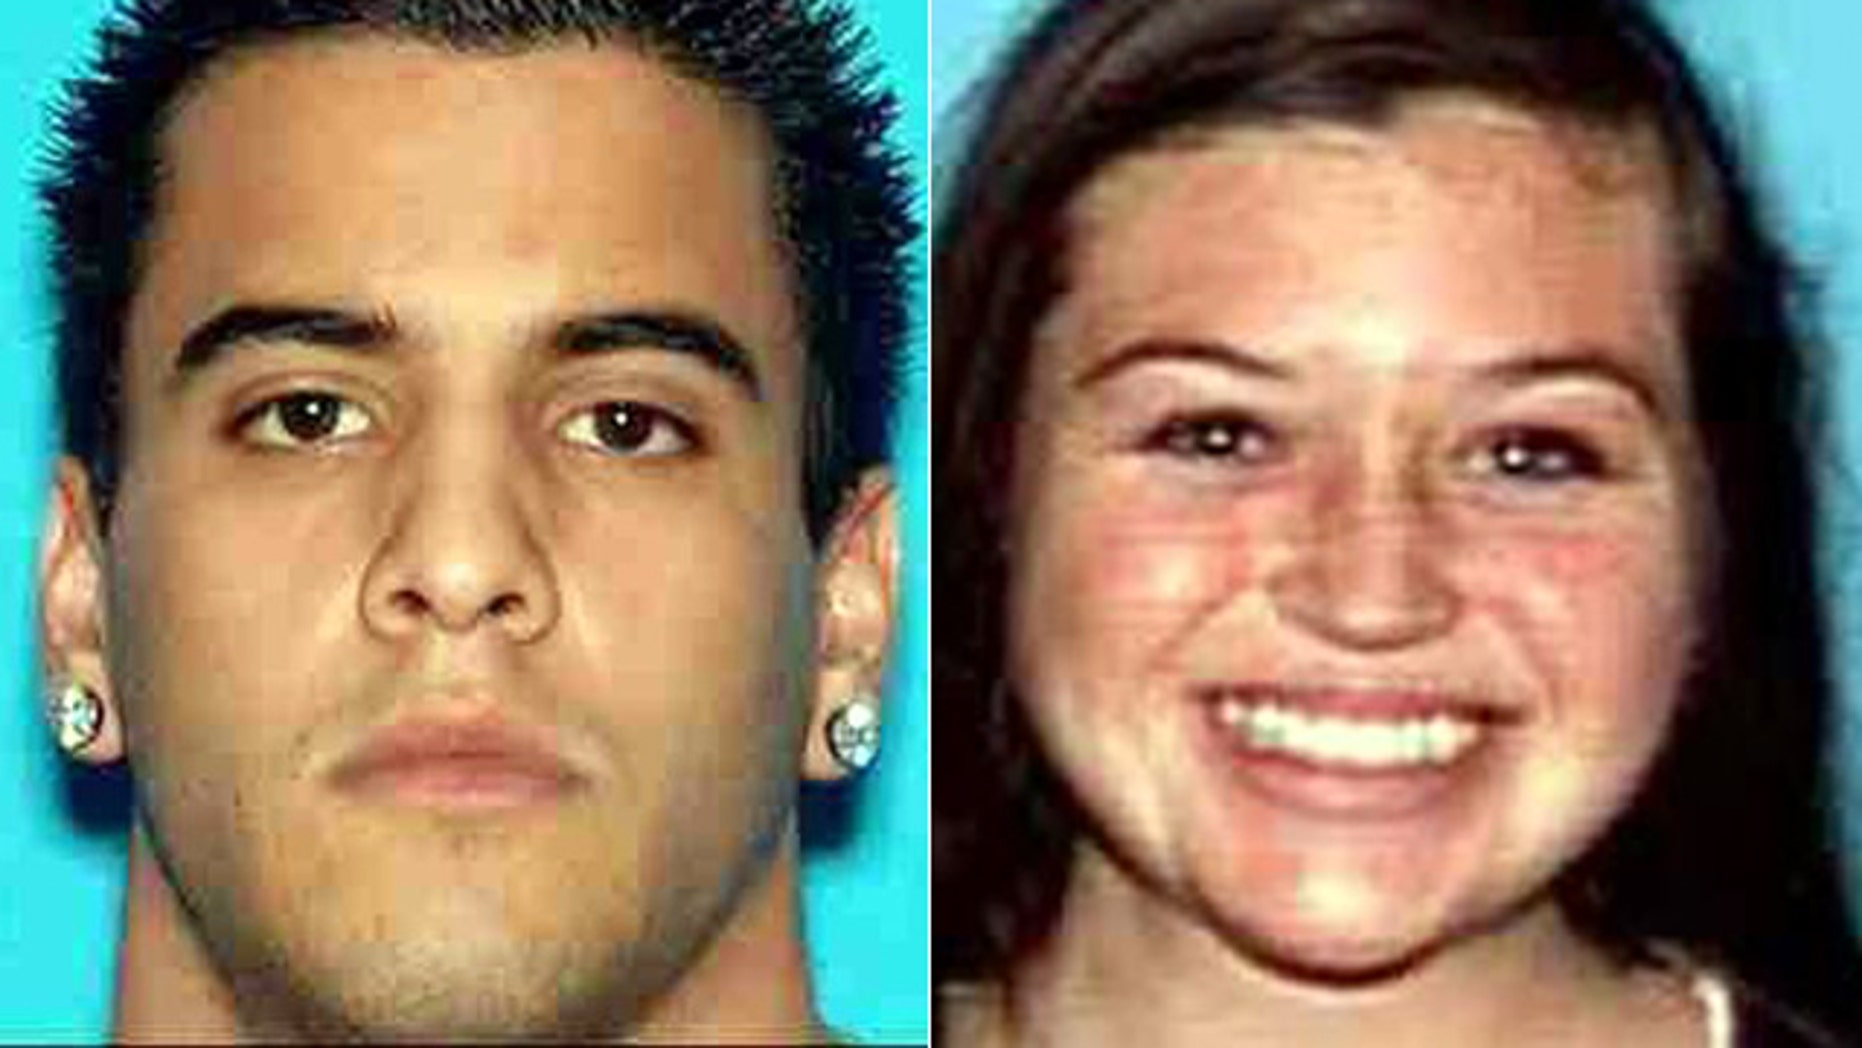 This image provided by the Orange County Sheriff's Department shows hikers Nicholas Cendoya and Kyndall Jack who have been missing since the weekend.